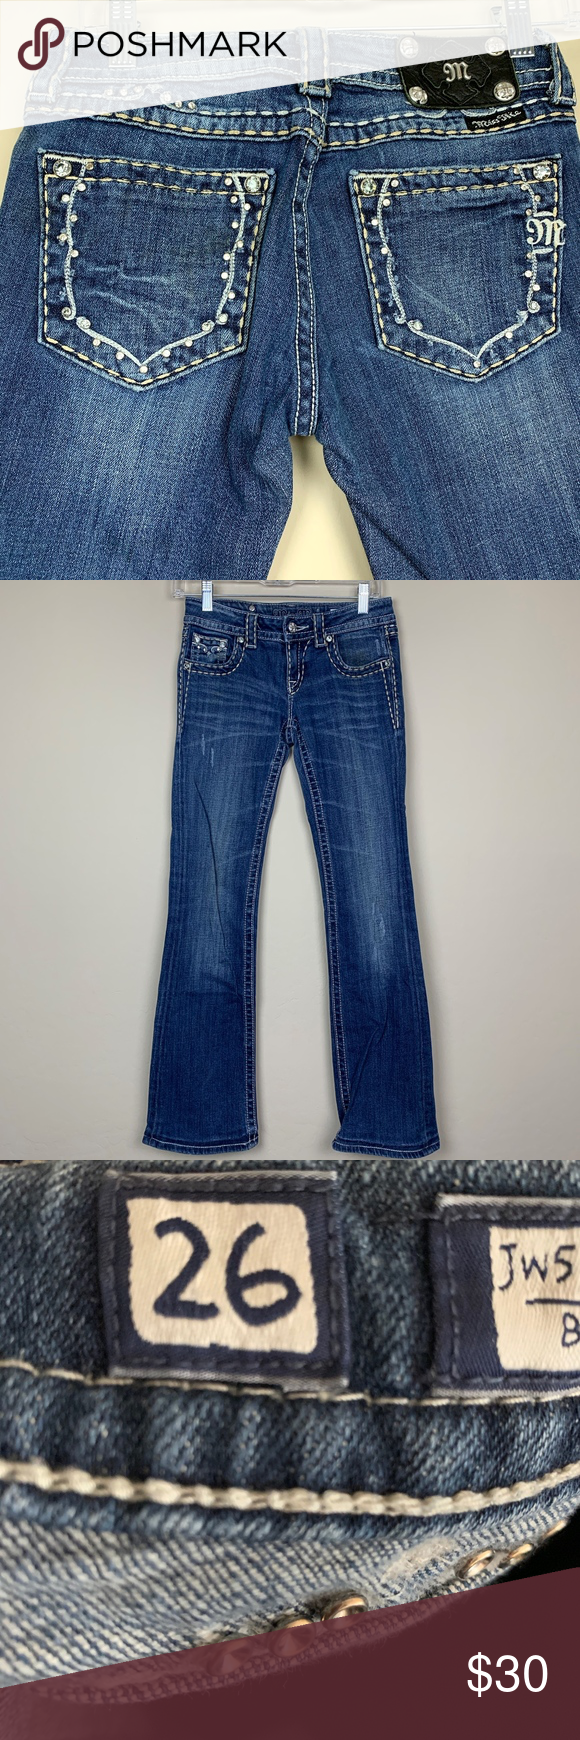 Miss Me Boot Cut Jeans SZ26 MISSING some bling on pockets Please see all pictures. Medium wash blue, Classic 5 pocket design, Zip up button front. Slight distress on hem. Good condition. Waist flat 13.5